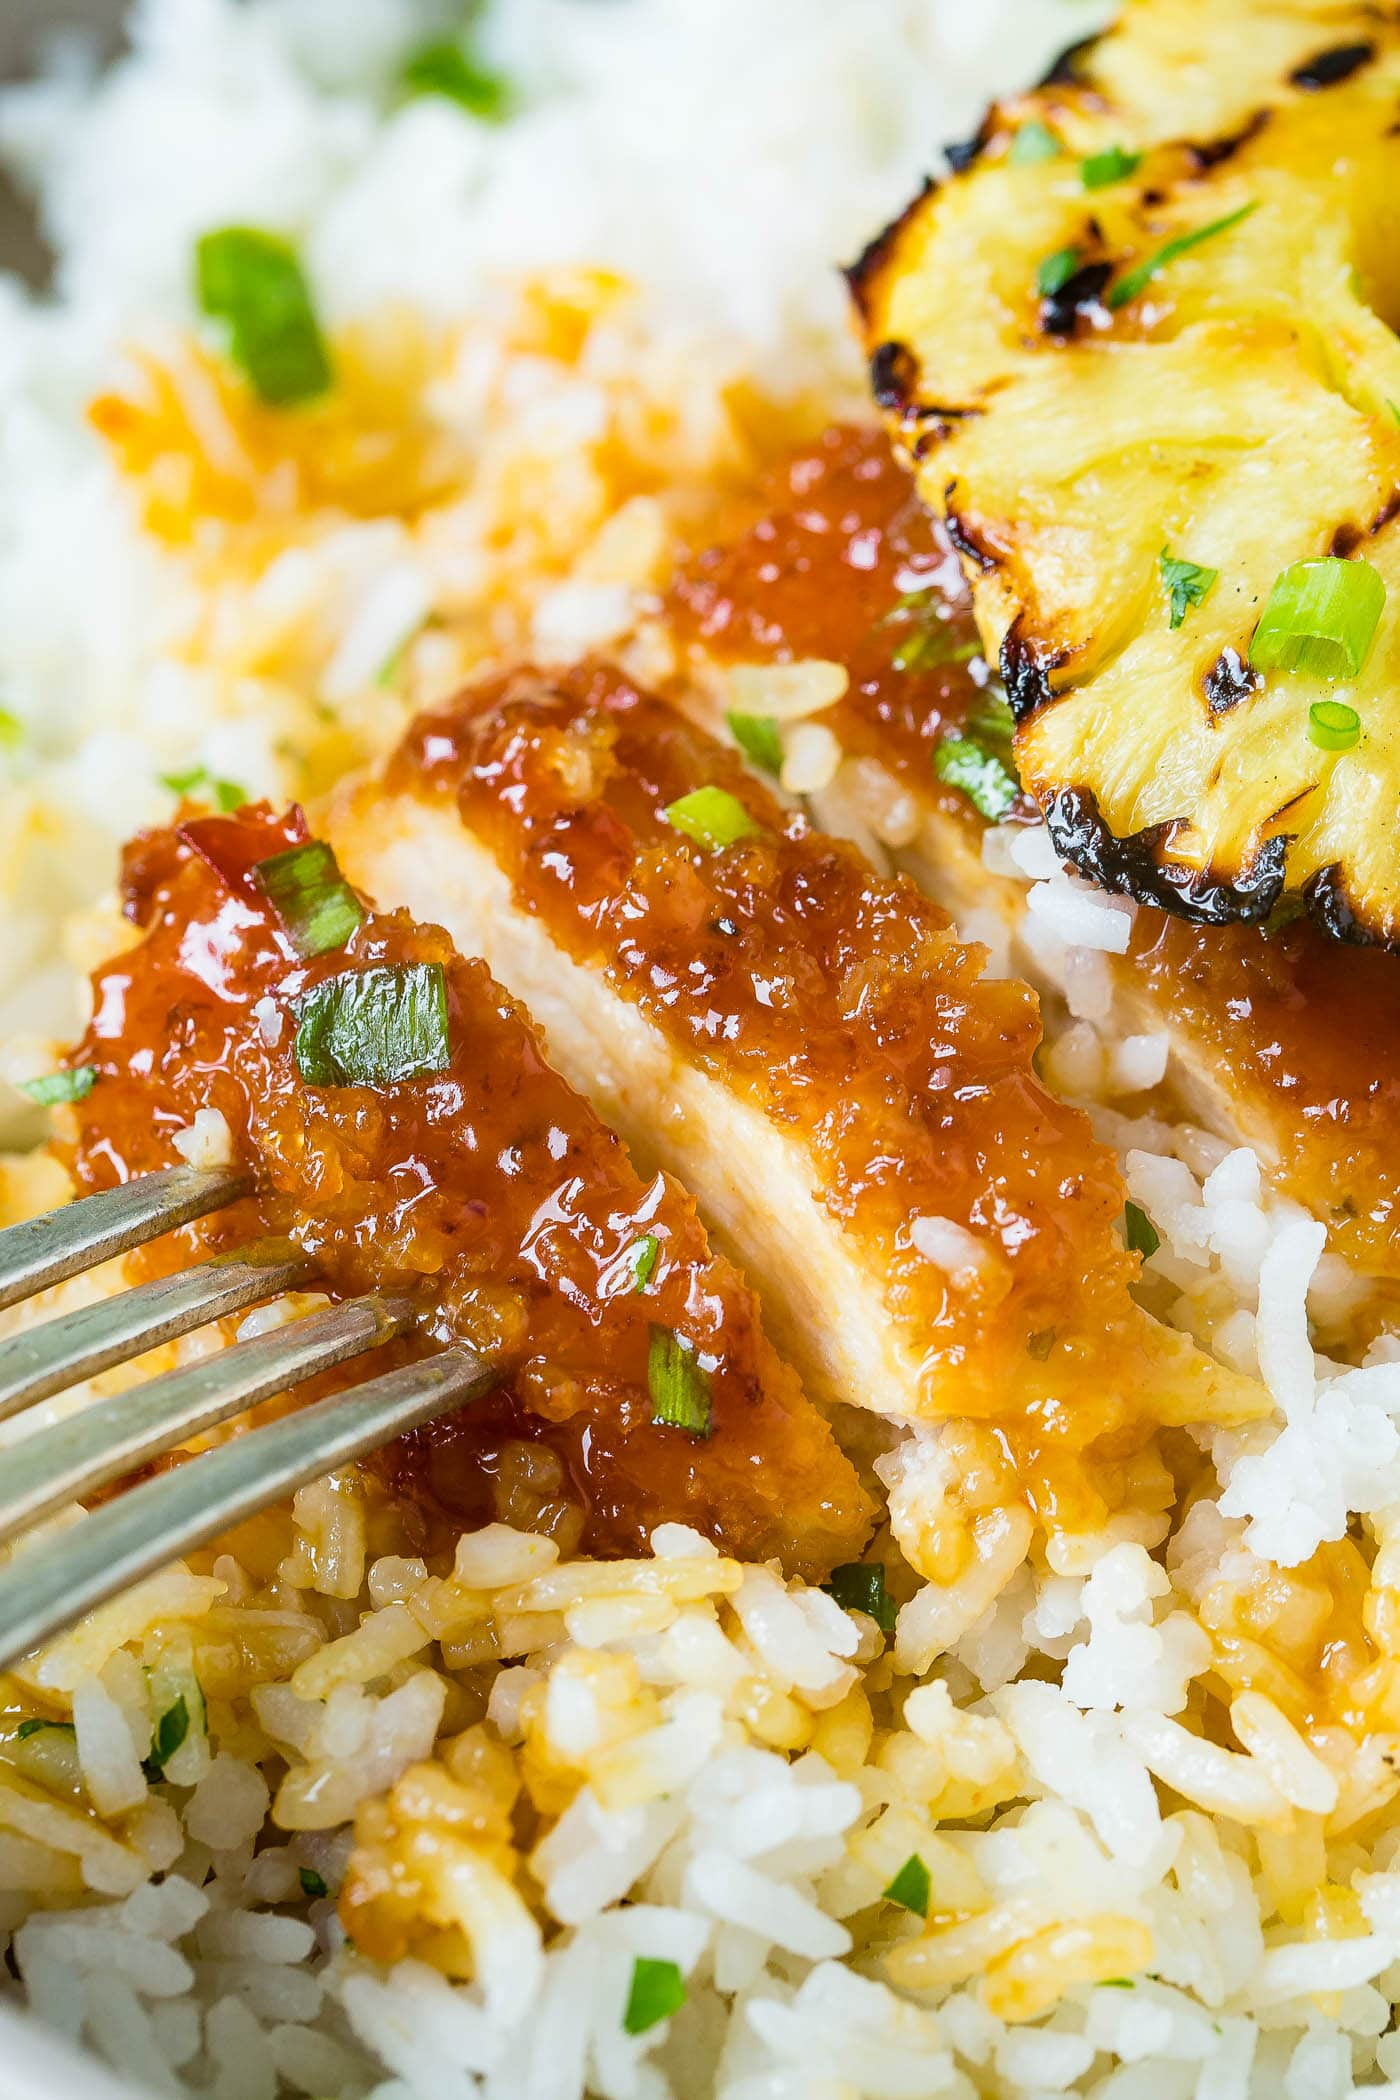 breaded chicken sticky sauce chicken like sweet and sour sauce then a beautiful piece of grilled pineapple on top